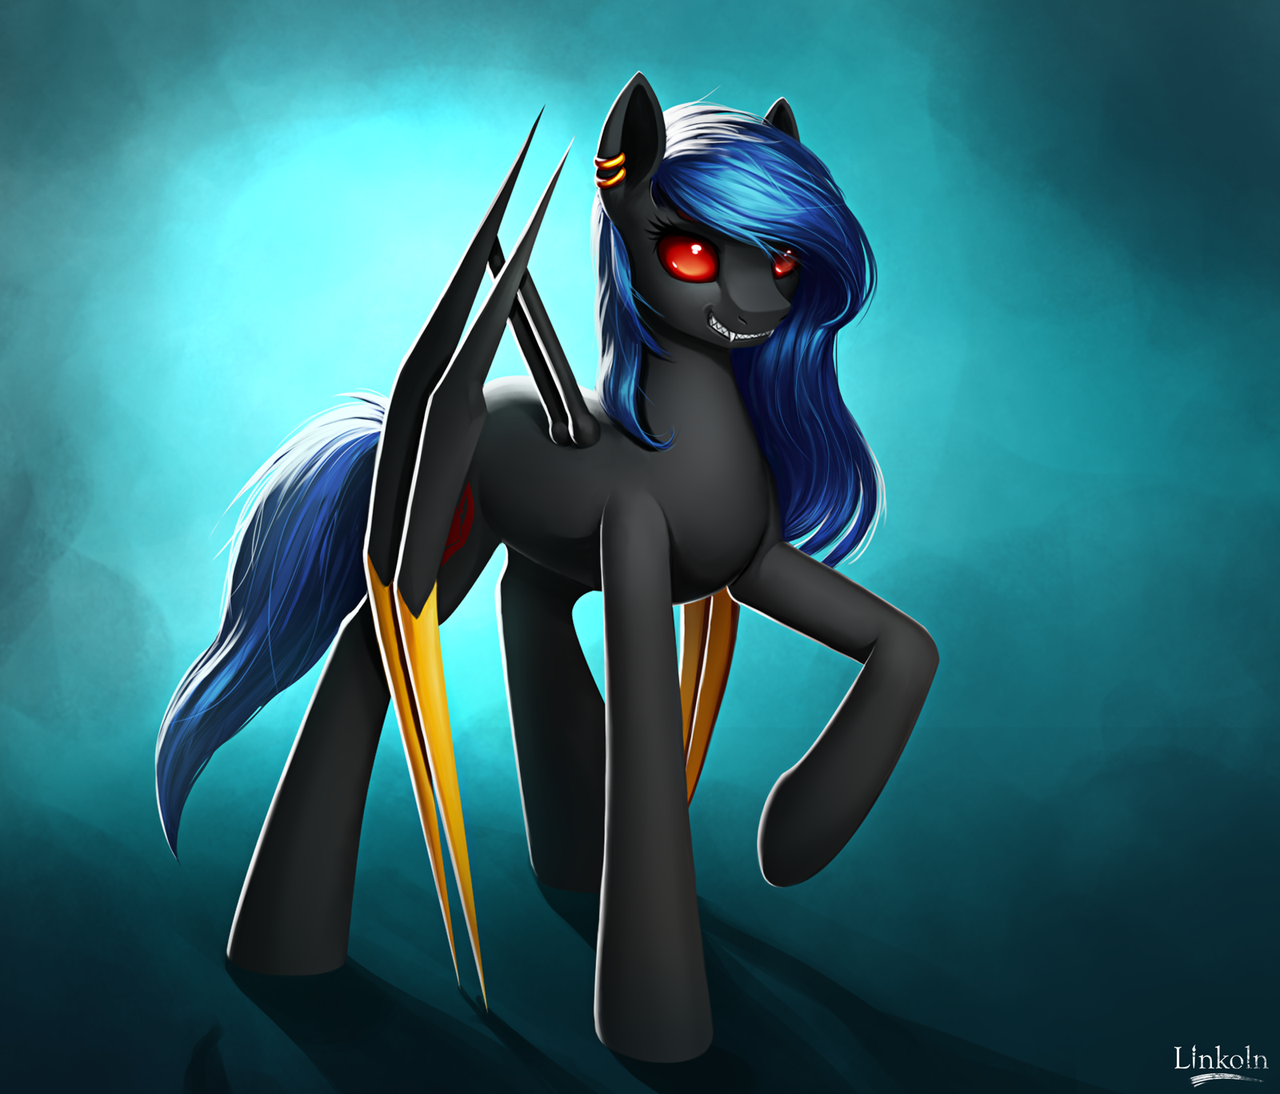 e926 blue_hair ear_piercing equine eyelashes fan_character feral gradient_background hair hooves hybrid l1nkoln mammal my_little_pony piercing red_eyes simple_background solo standing